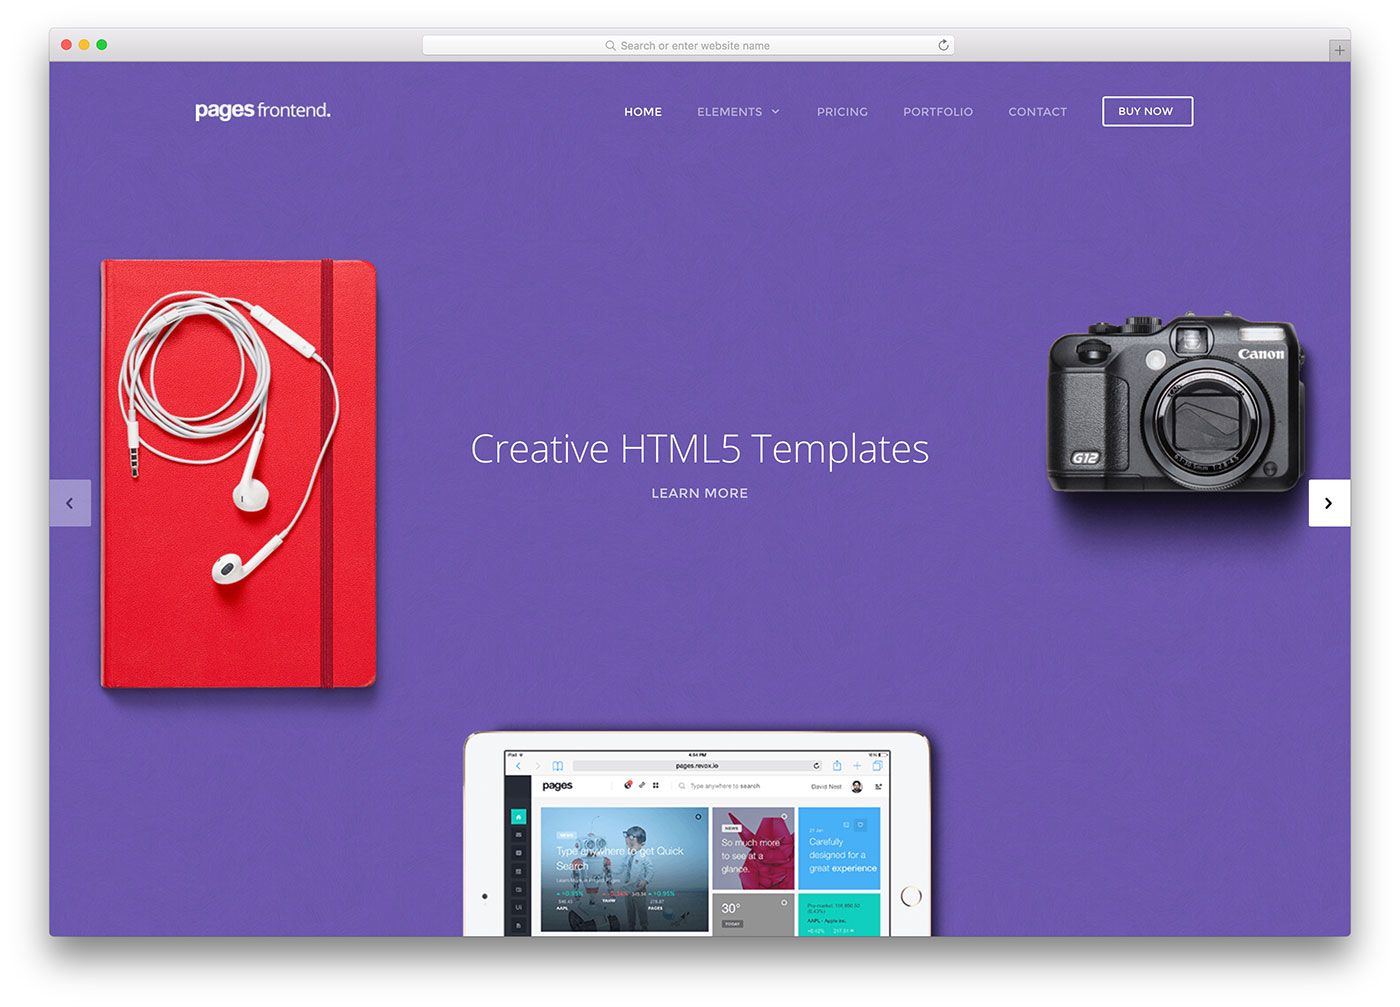 33 Creative HTML5/CSS3 Website Templates To Create Unique Websites 2019